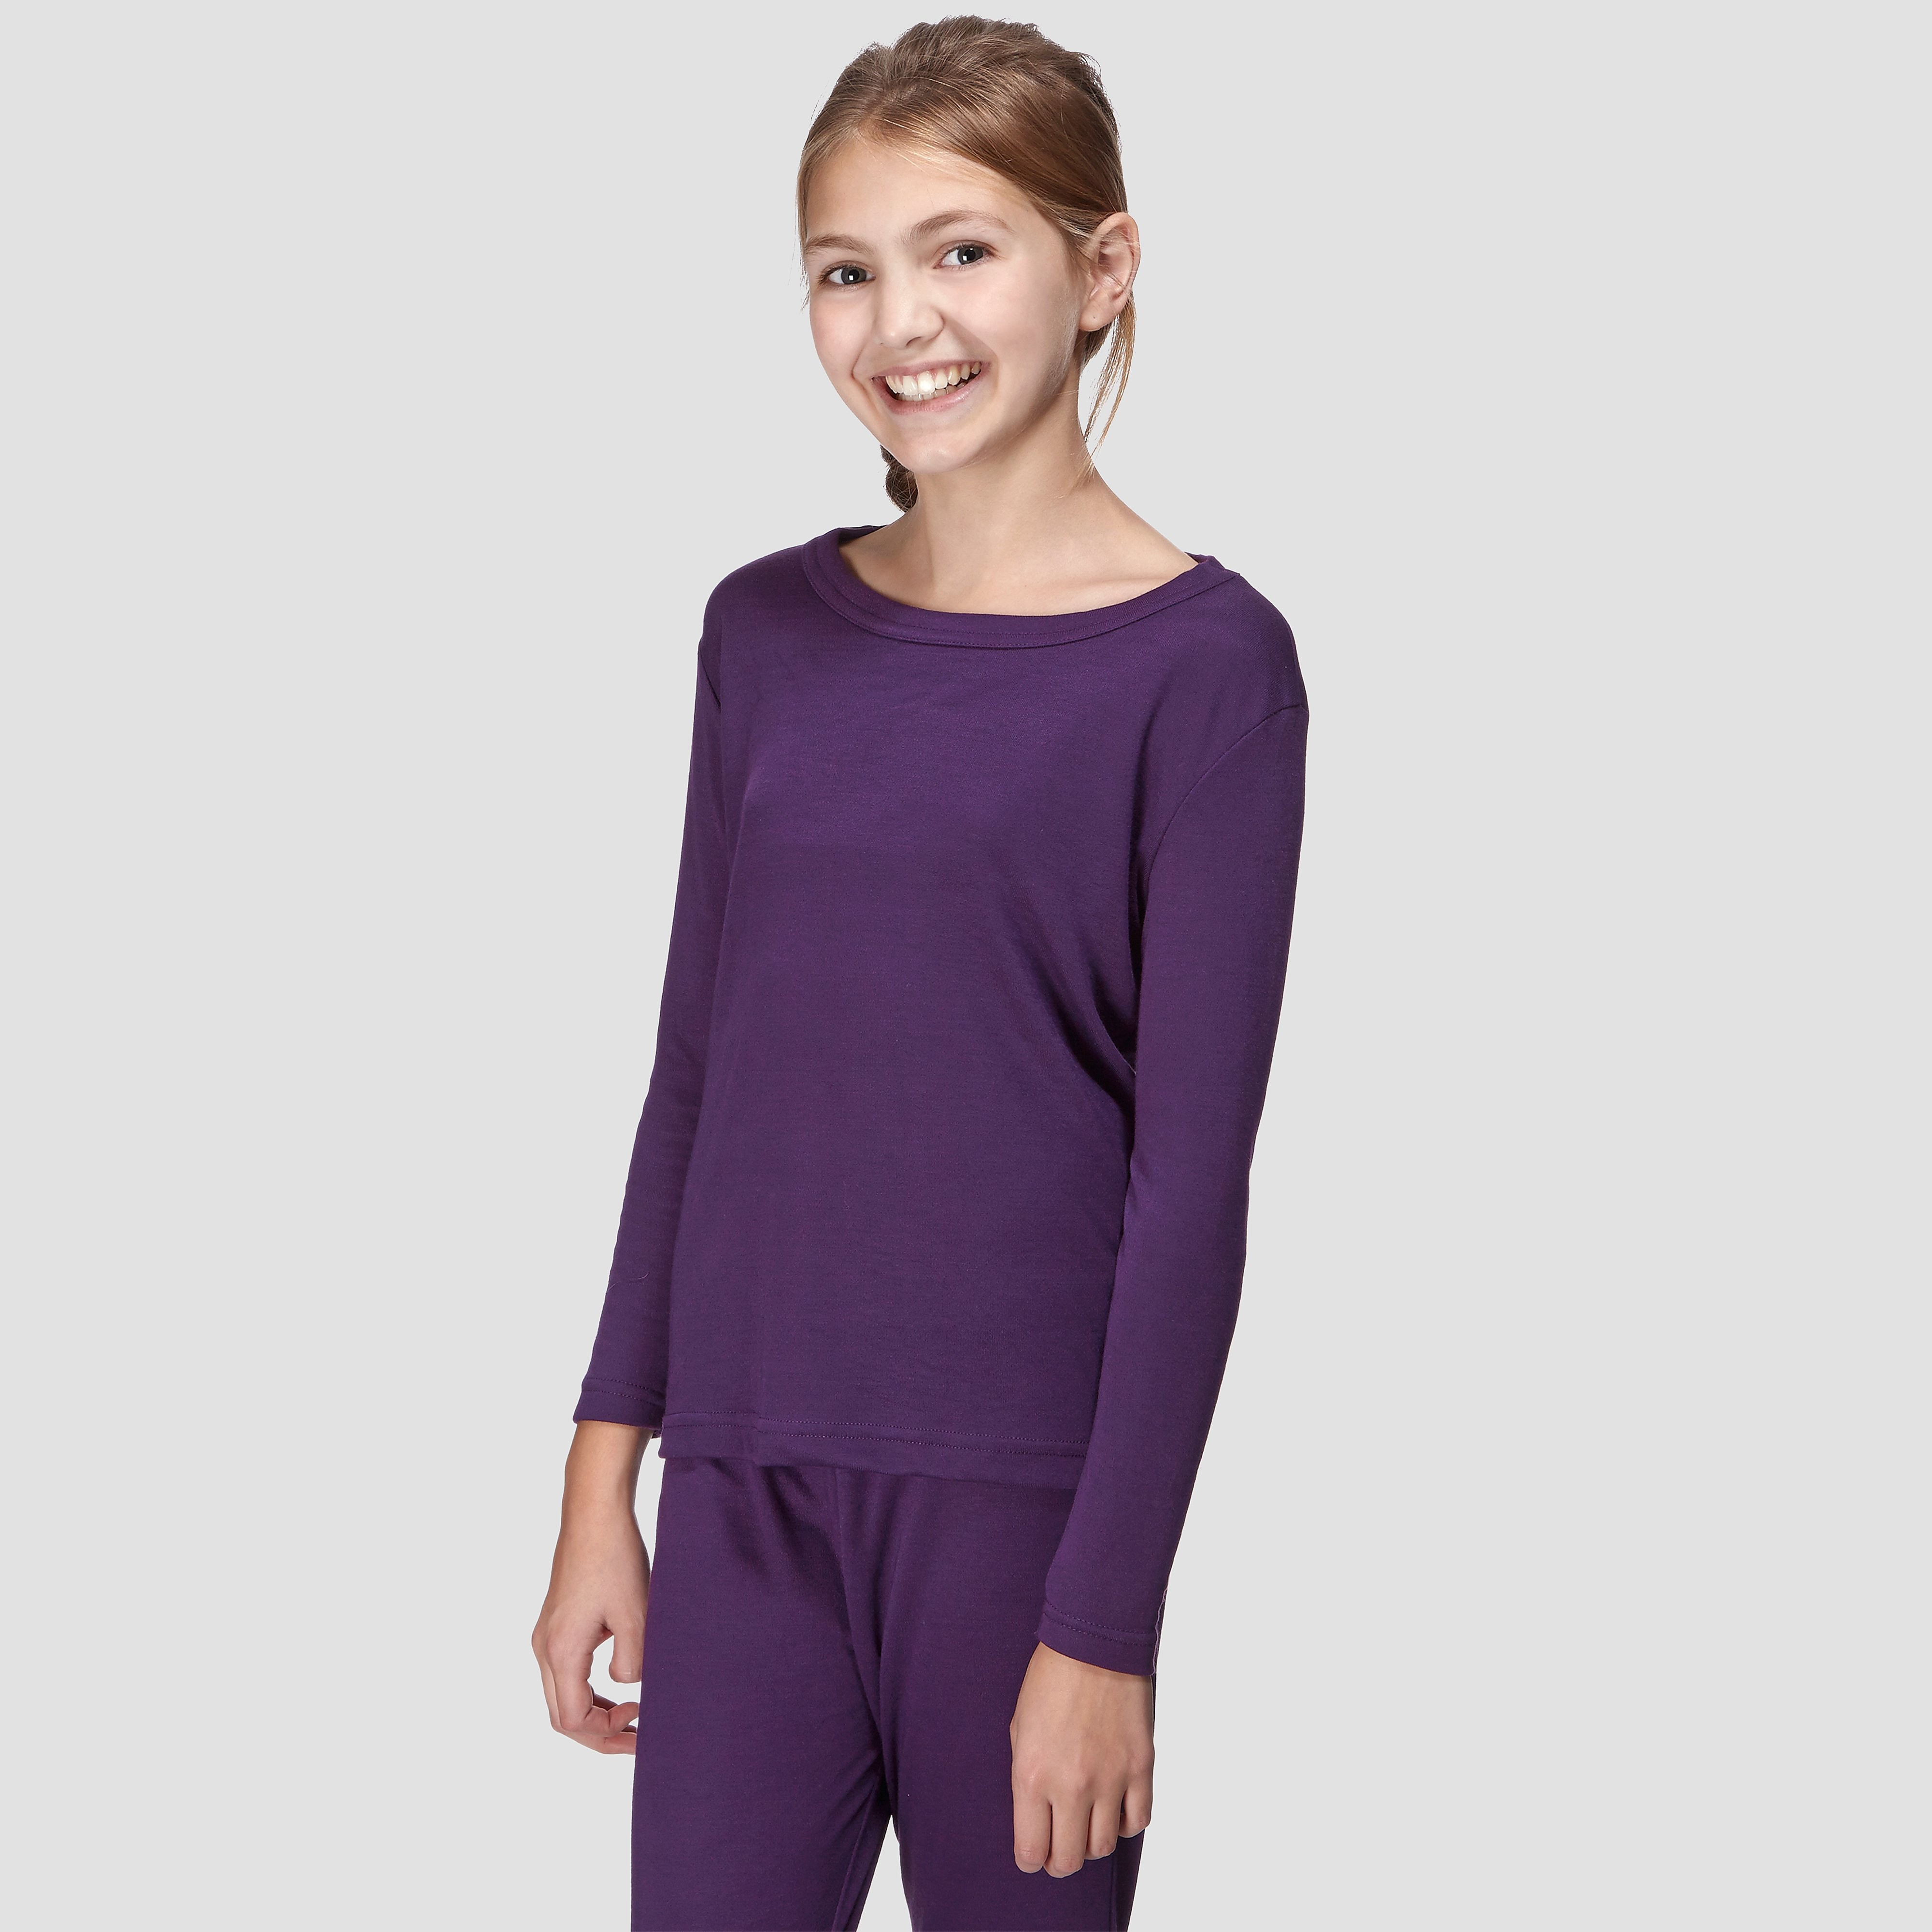 Peter Storm Girls' Thermal Baselayer Top